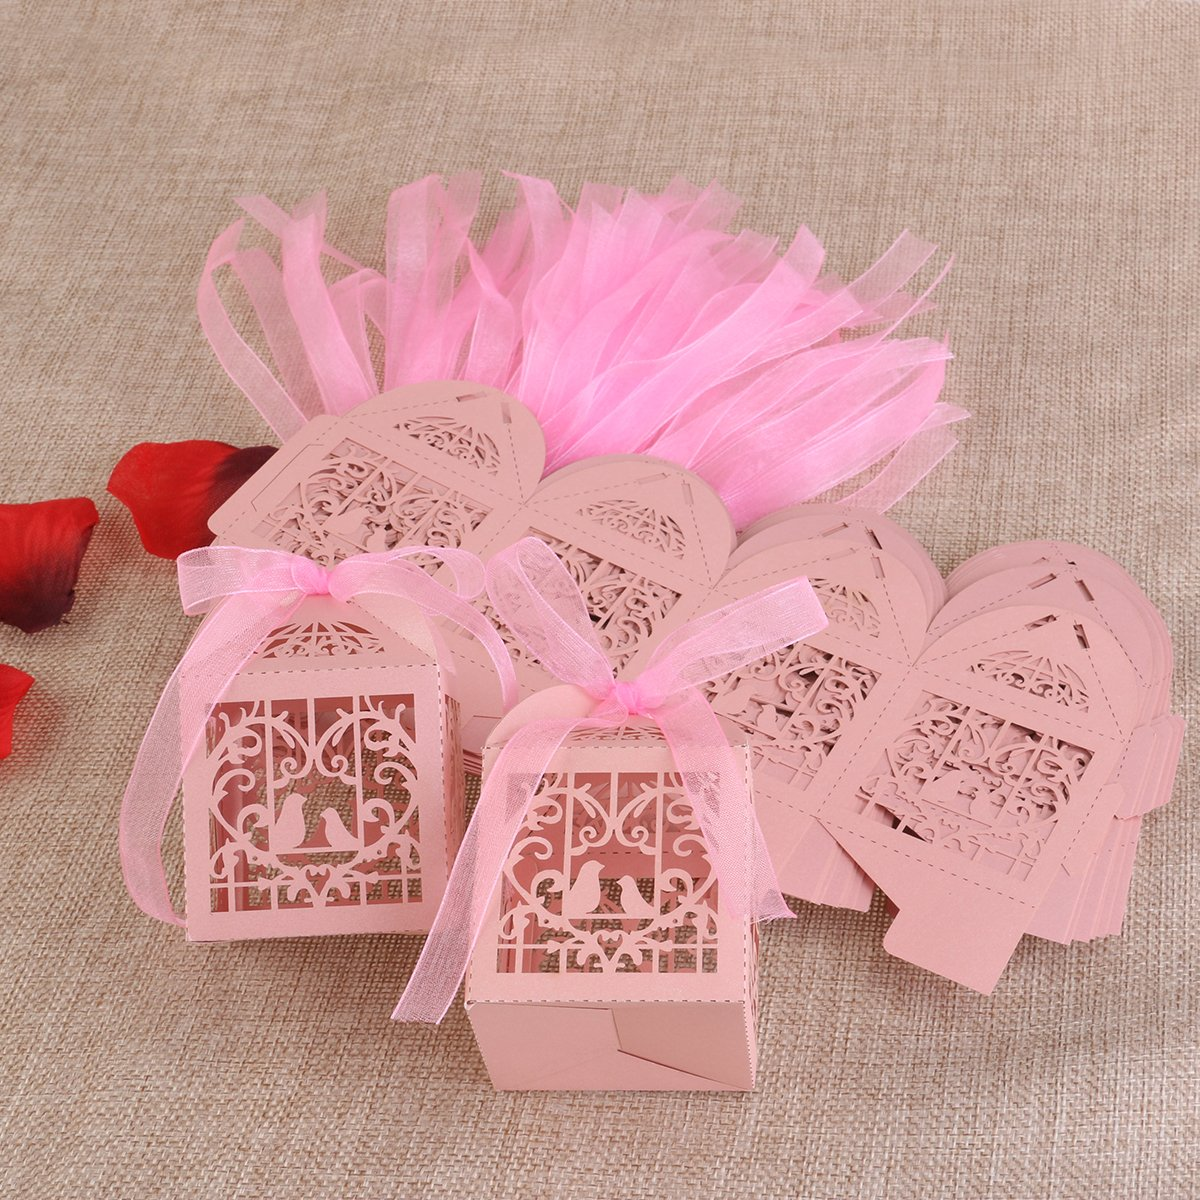 Amazon.com: Tinksky 50pcs Floral Heart Bird Wedding Party Favor ...